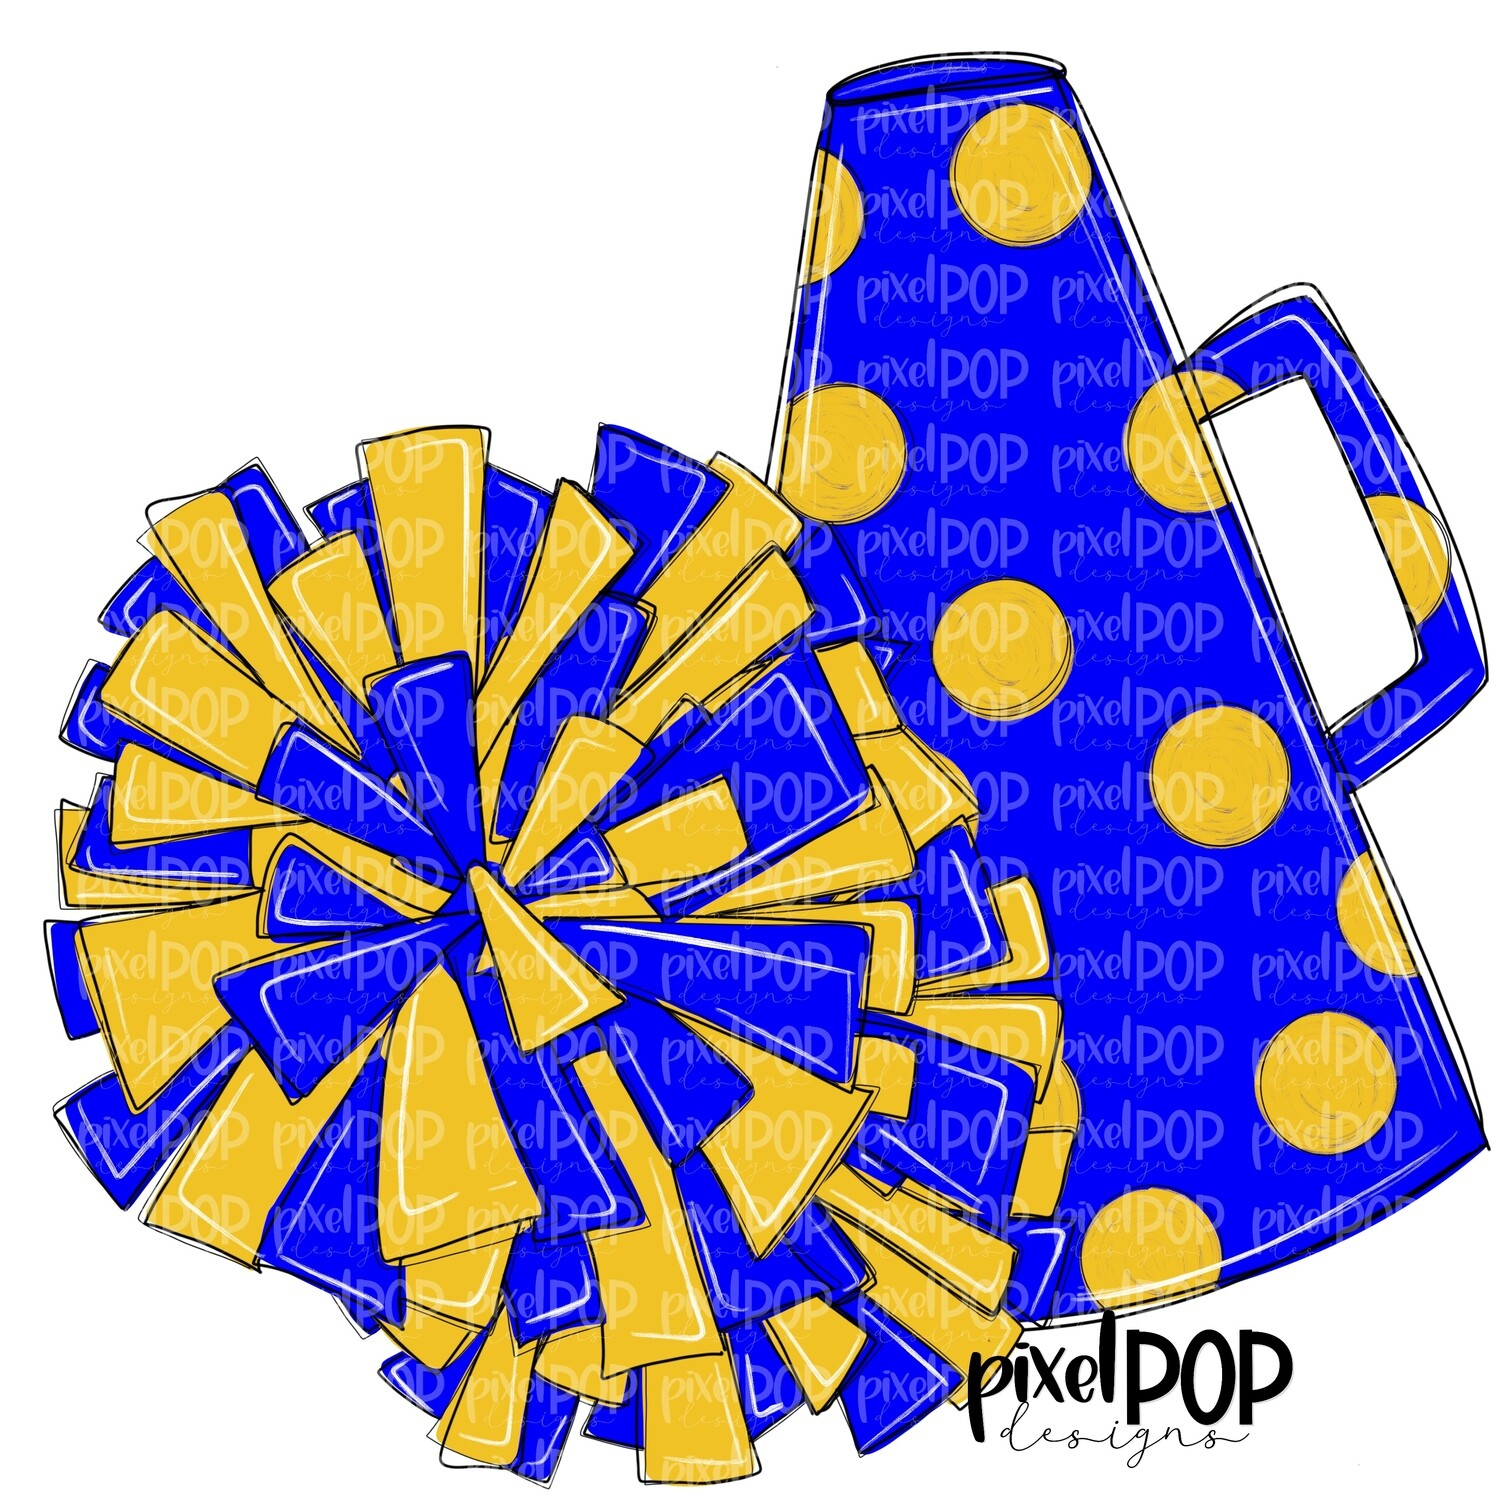 Cheerleading Megaphone and Poms Blue and Yellow PNG | Cheerleading | Cheer Design | Cheer Art | Cheer Blank | Sports Art